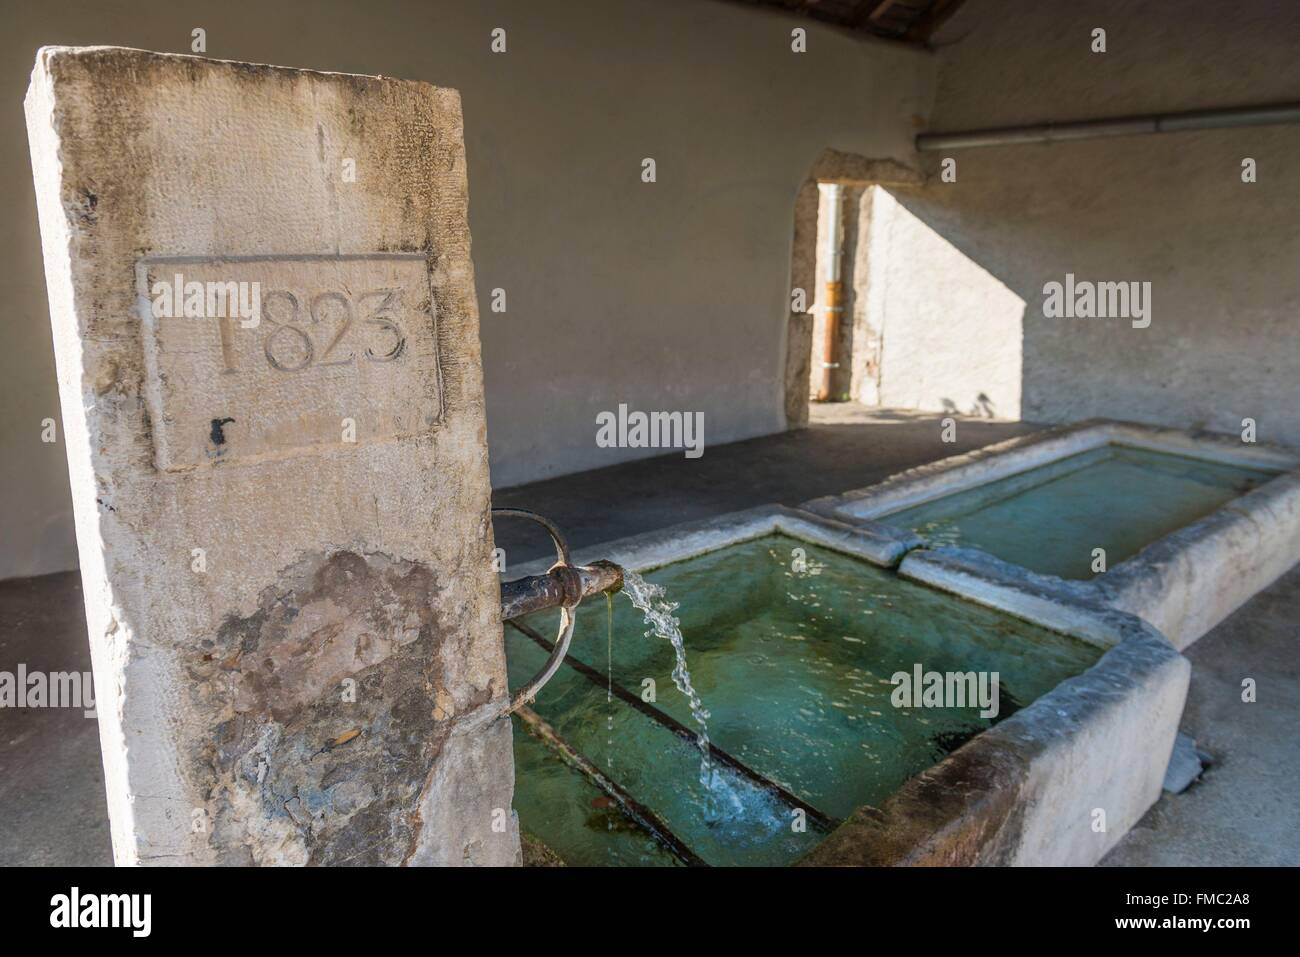 France, Ain, Pays de Gex, Segny, wash house - Stock Image